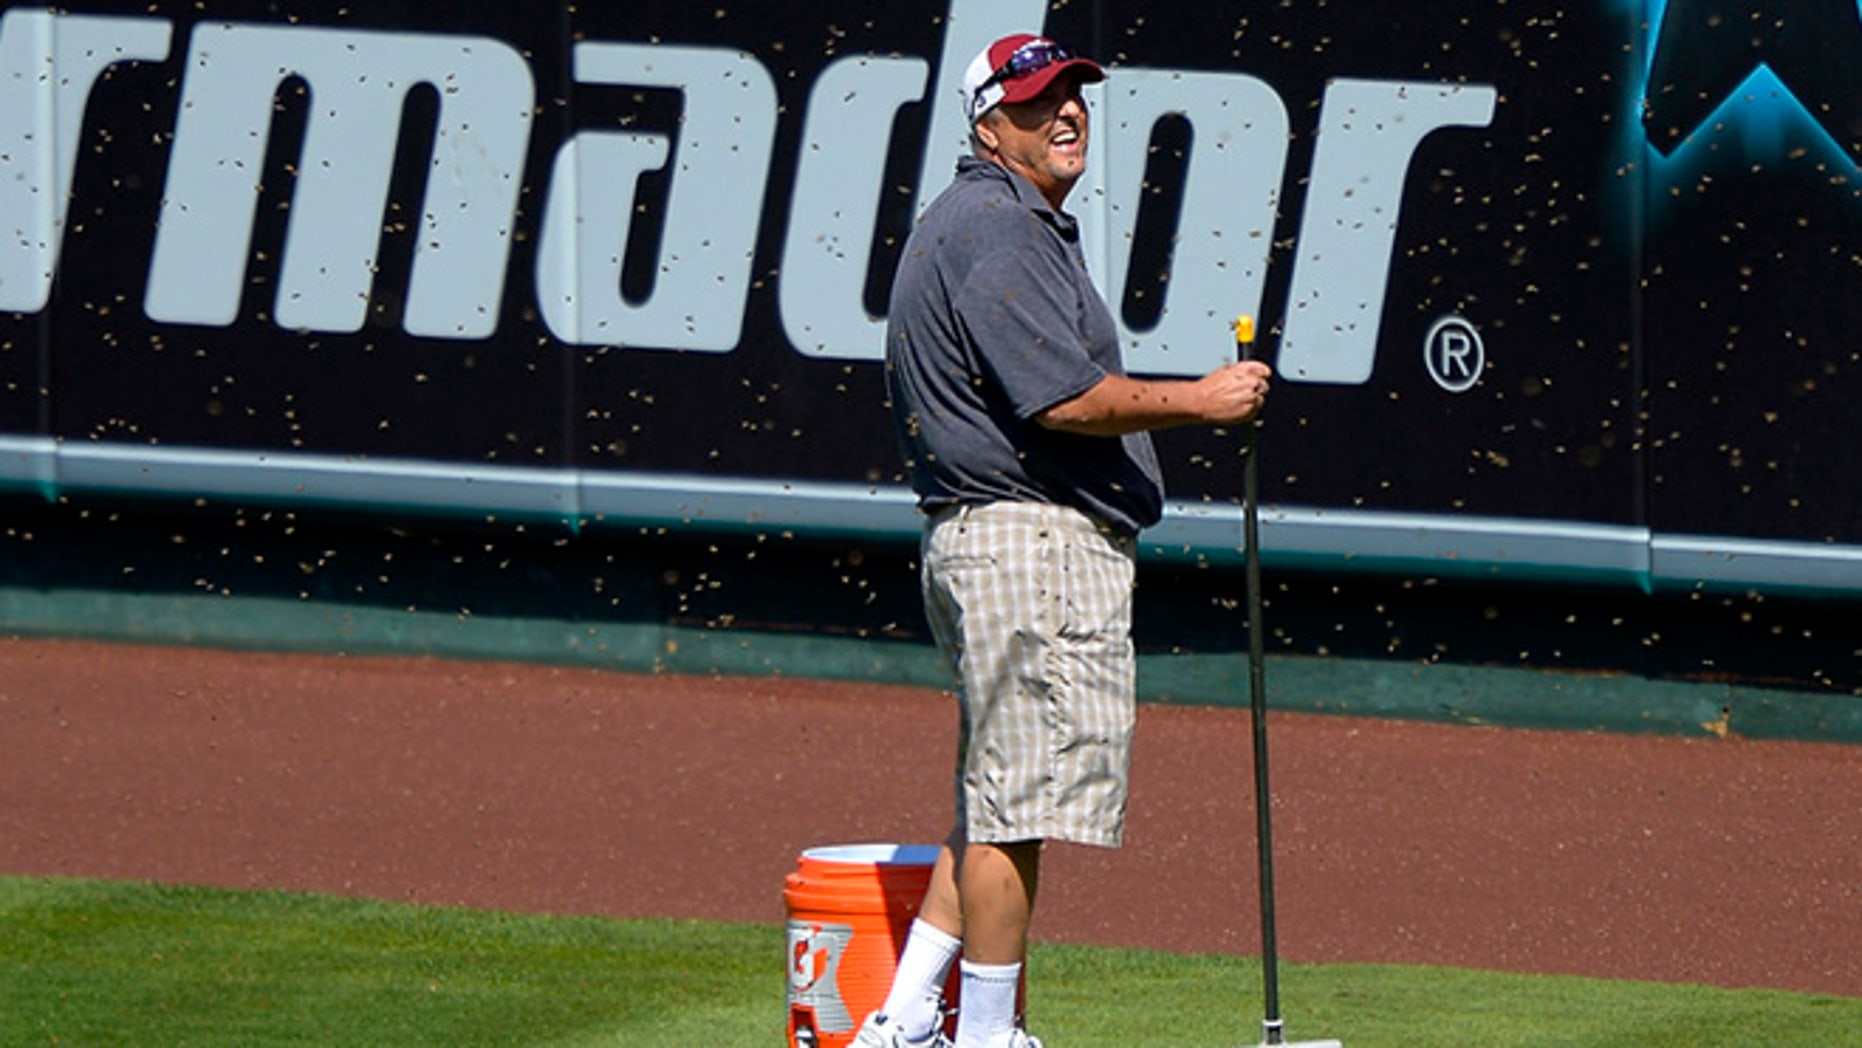 Sept. 22, 2013: Apiarist John Potom, of Honey Pacifica, deals with a swarm of bees that held up a baseball game between the Los Angeles Angels and the Seattle Mariners for several minutes during the third inning on in Anaheim, Calif.